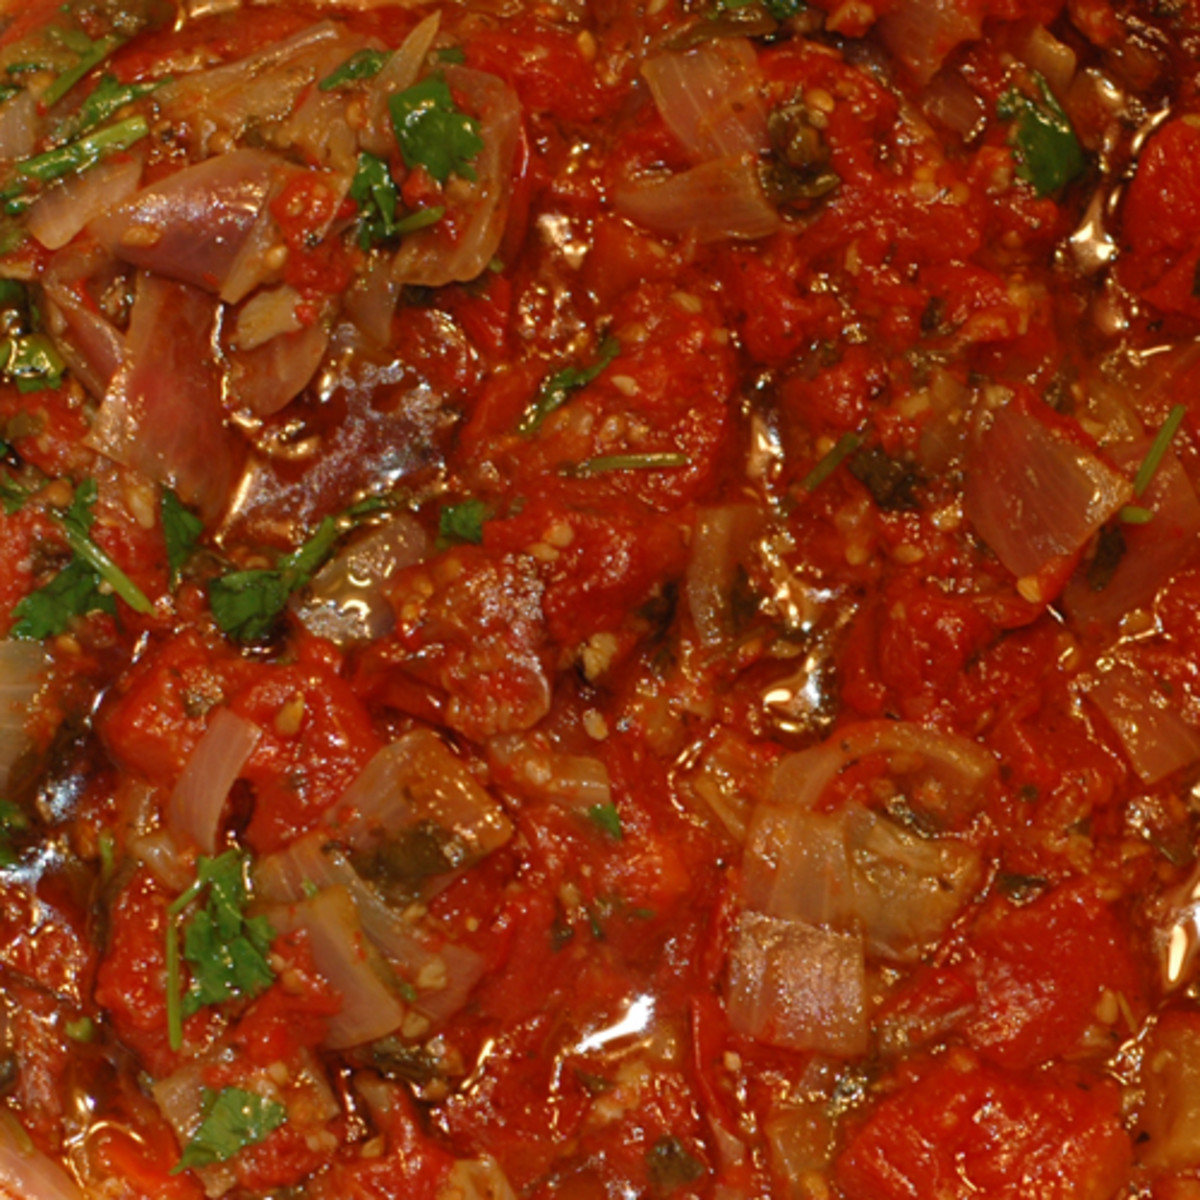 The Finished Rustic Pasta Sauce